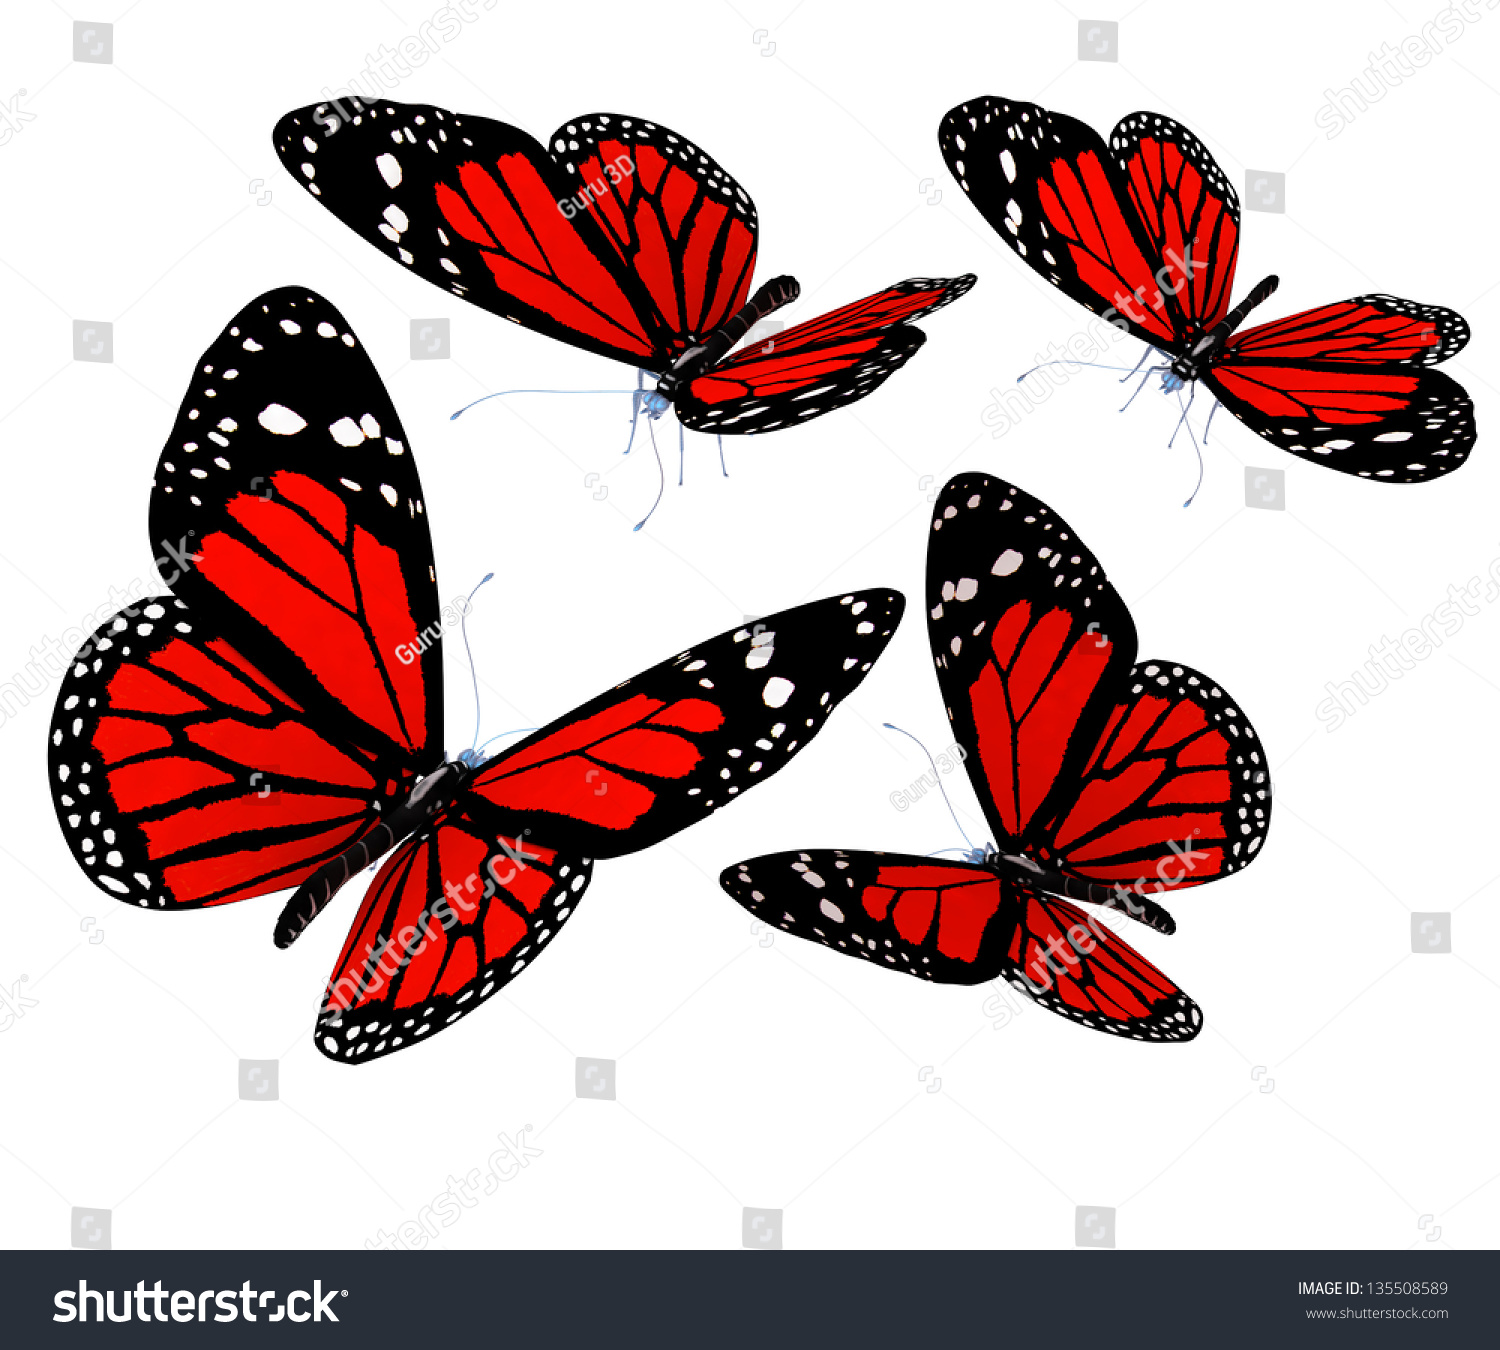 Red butterfly background - photo#27